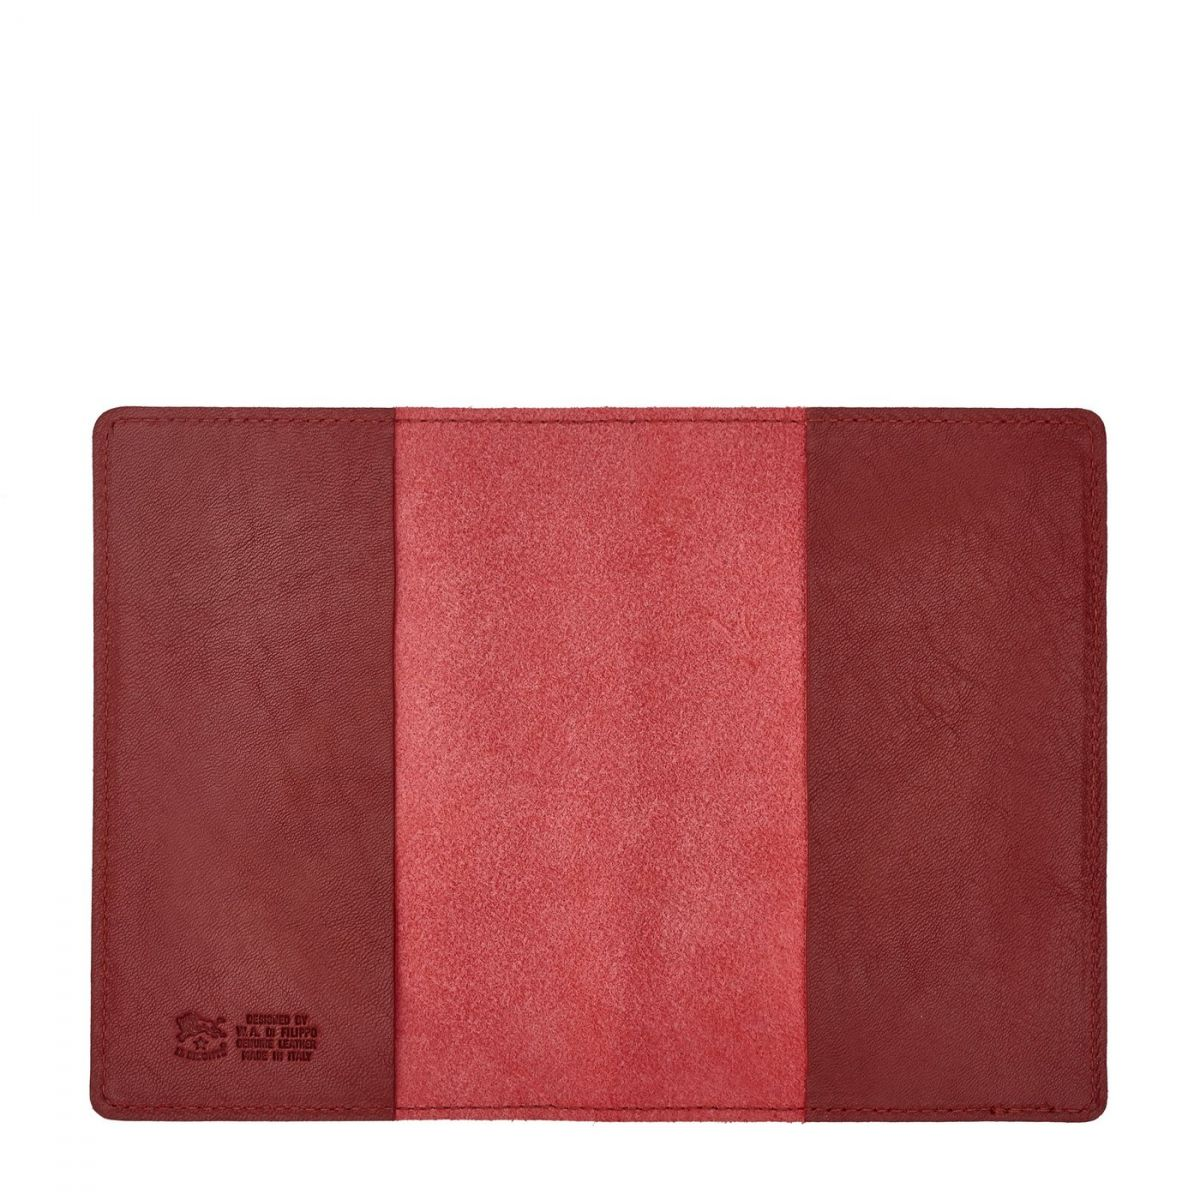 Case  in Cowhide Double Leather SCA005 color Red | Details